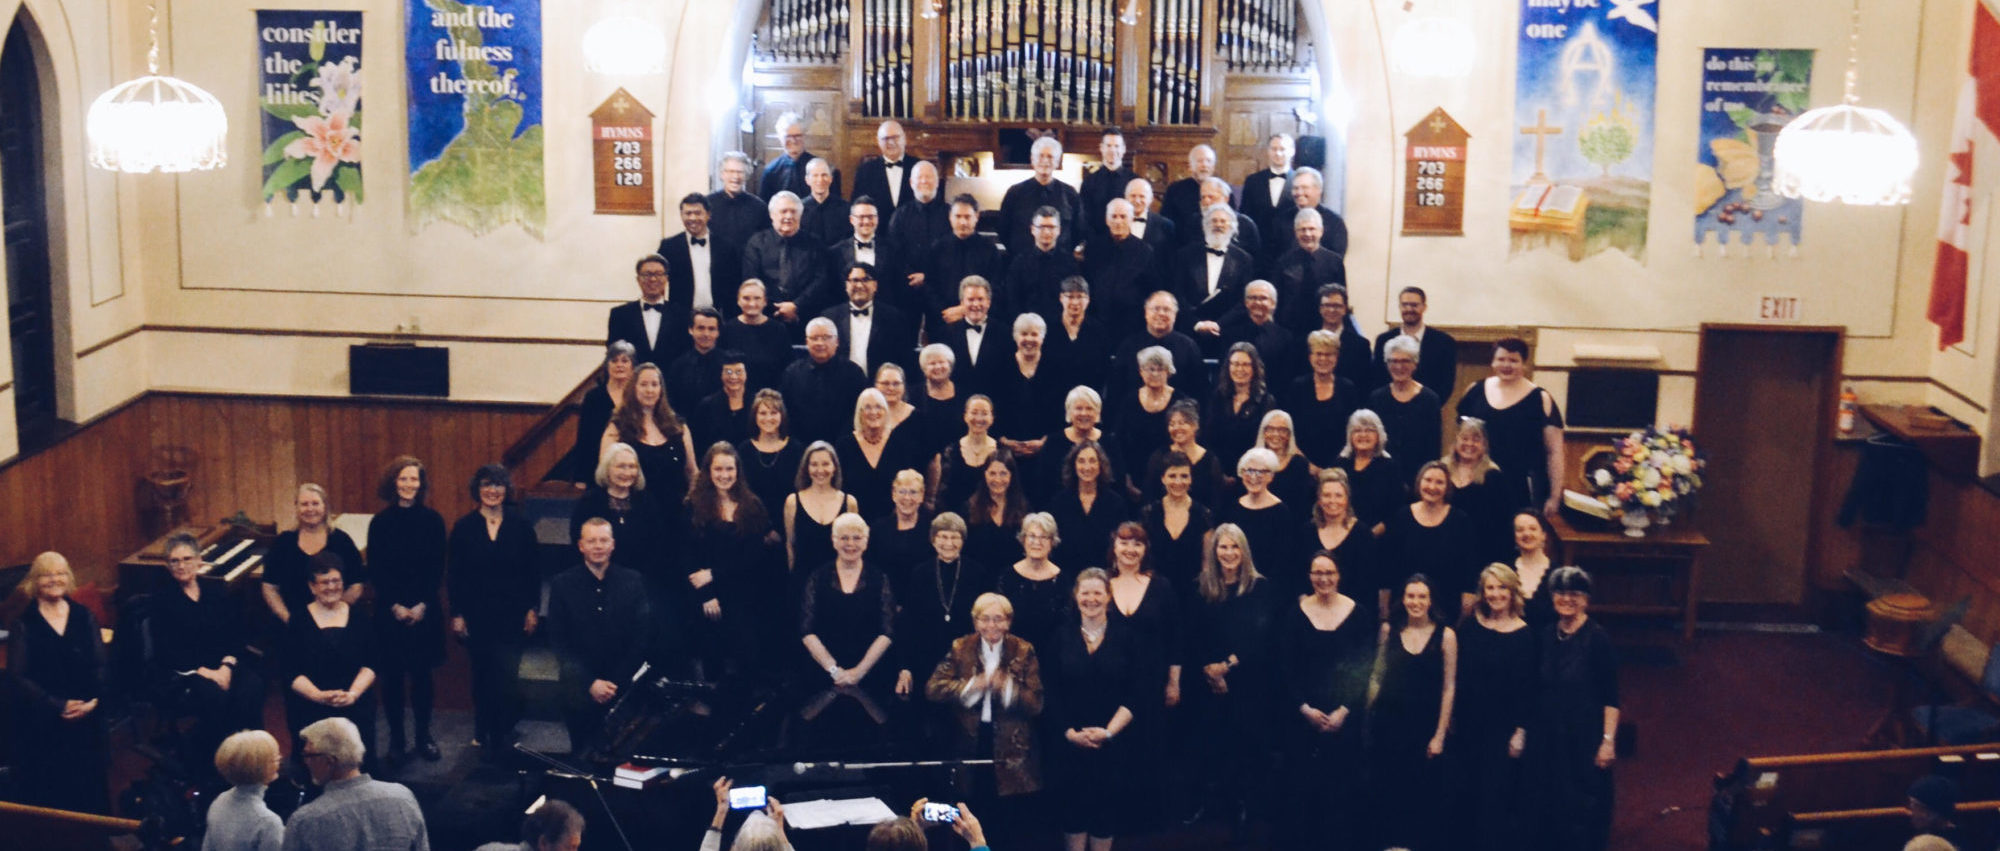 The Elmer Iseler Singers with the Wiarton Concert Choir in Wiarton, ON, 2018